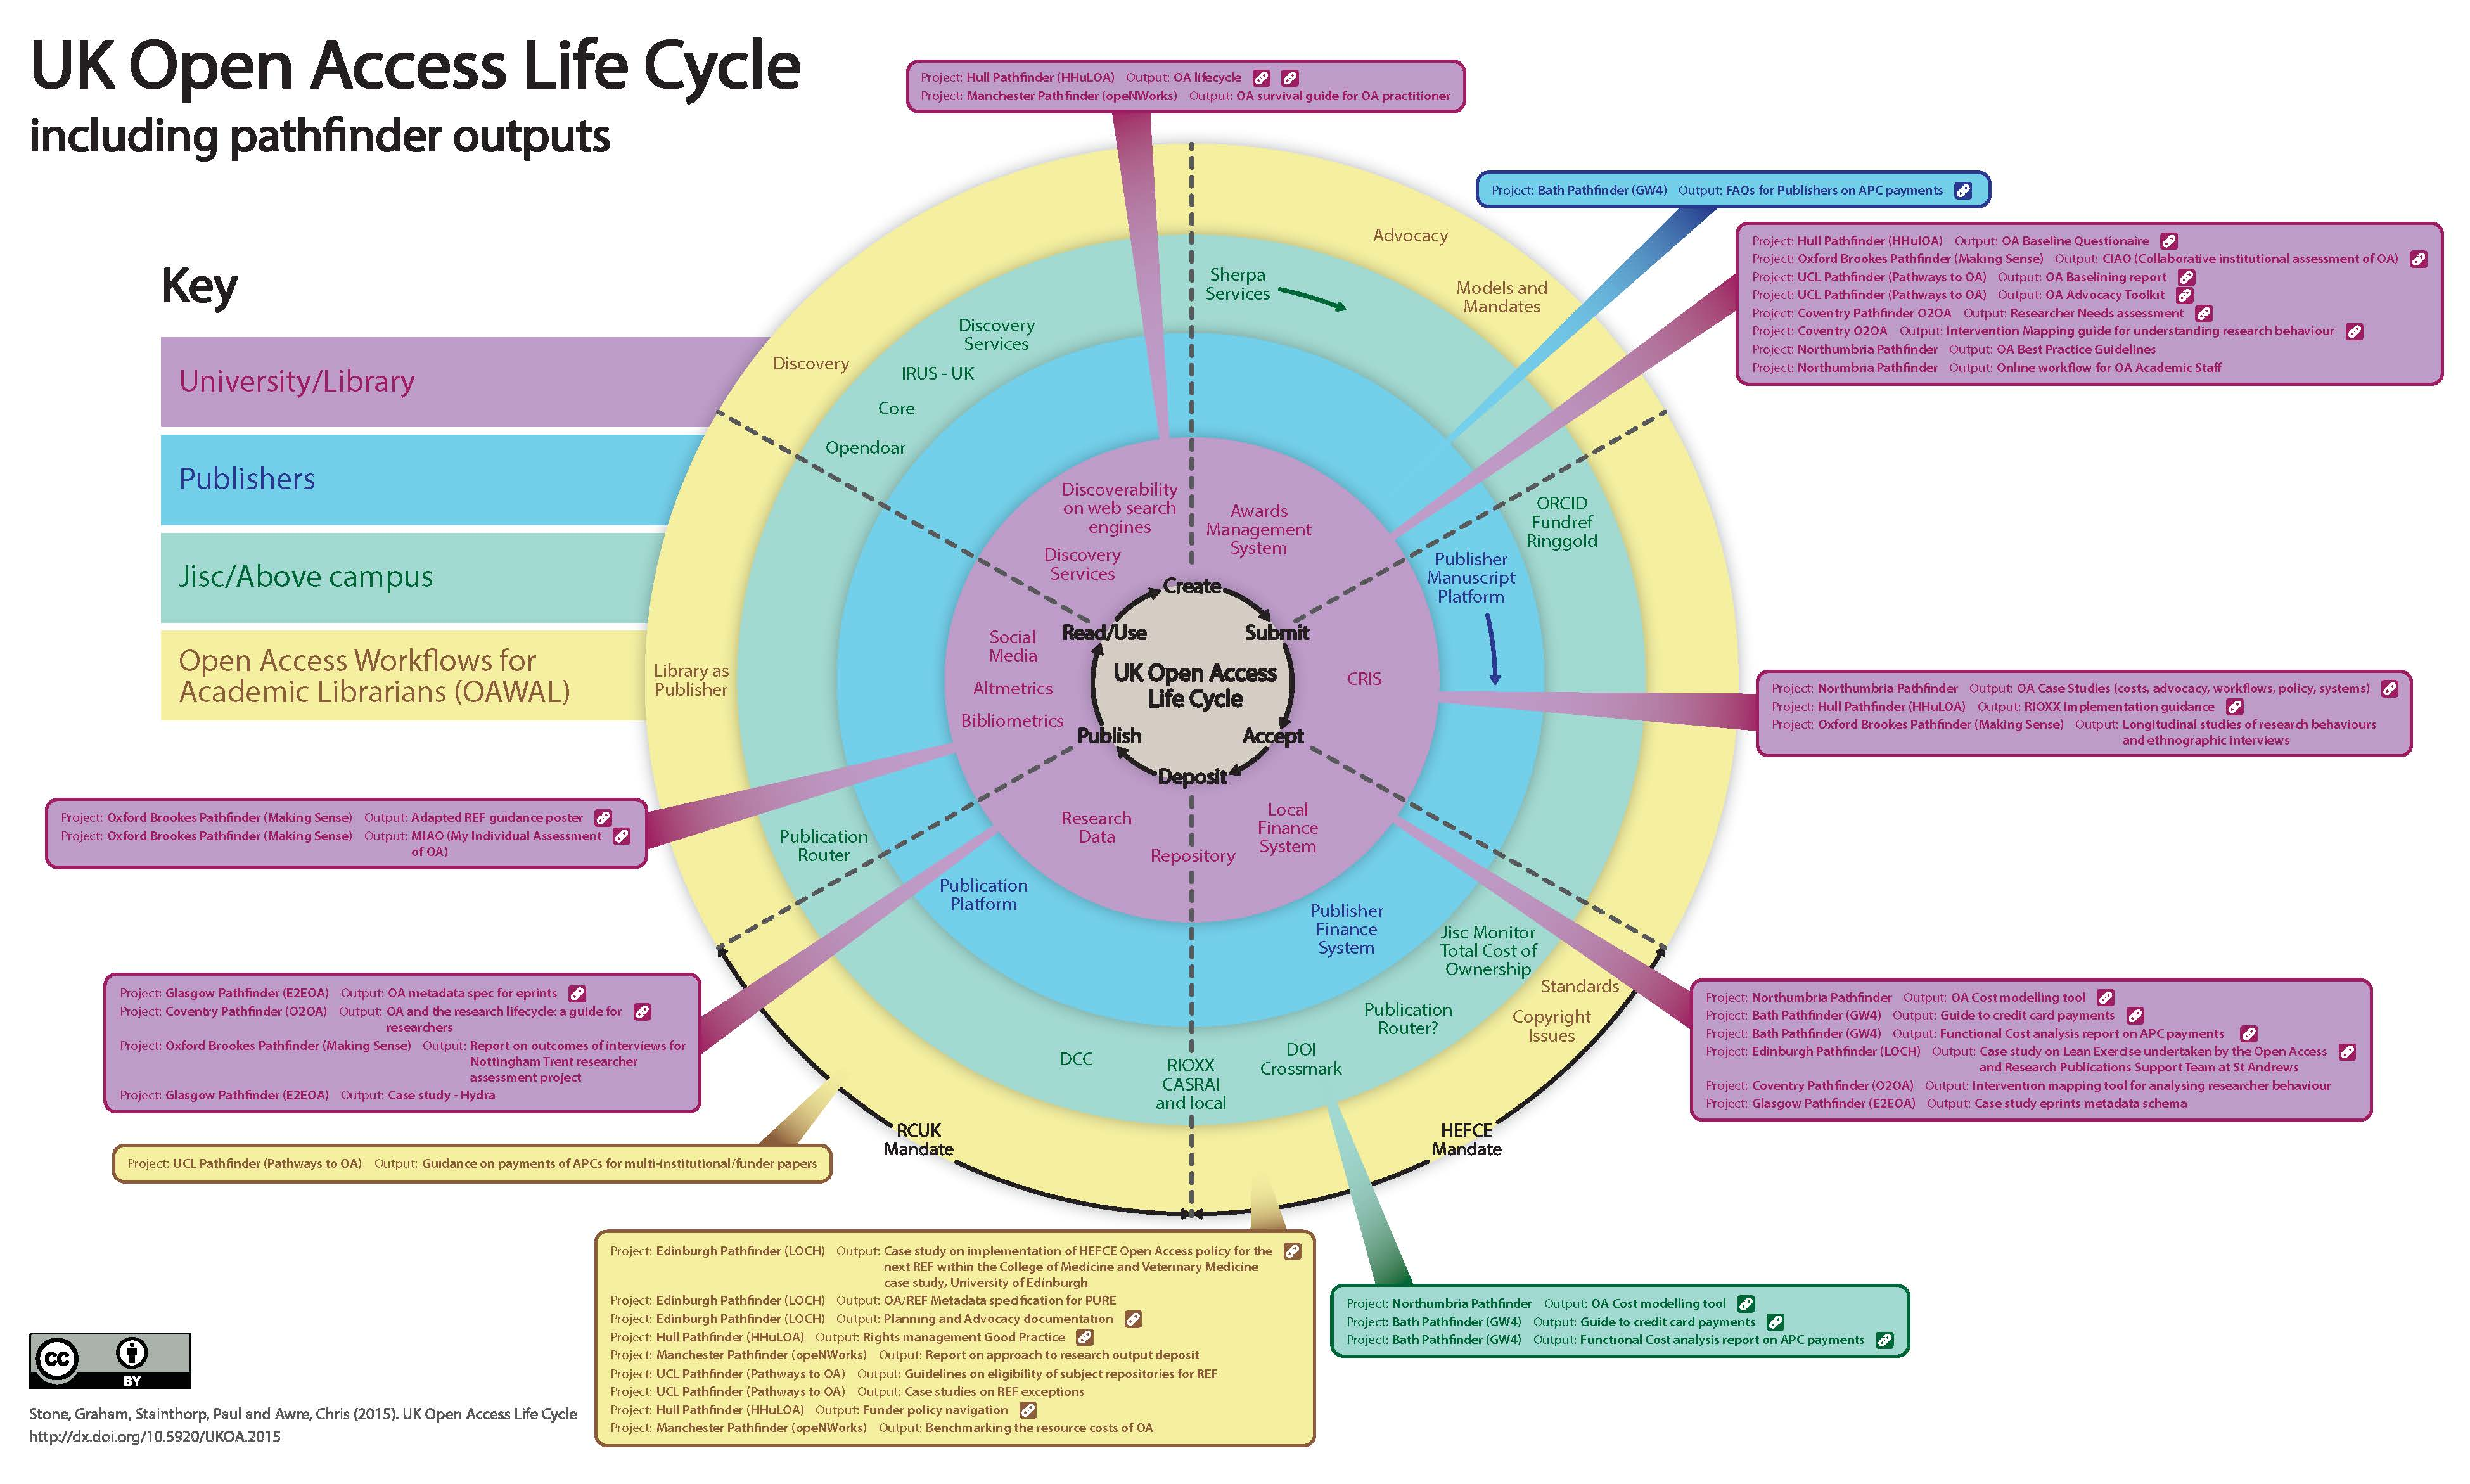 UK Open Access Life Cycle Diagram Dec2015 withPathfinderOutputs